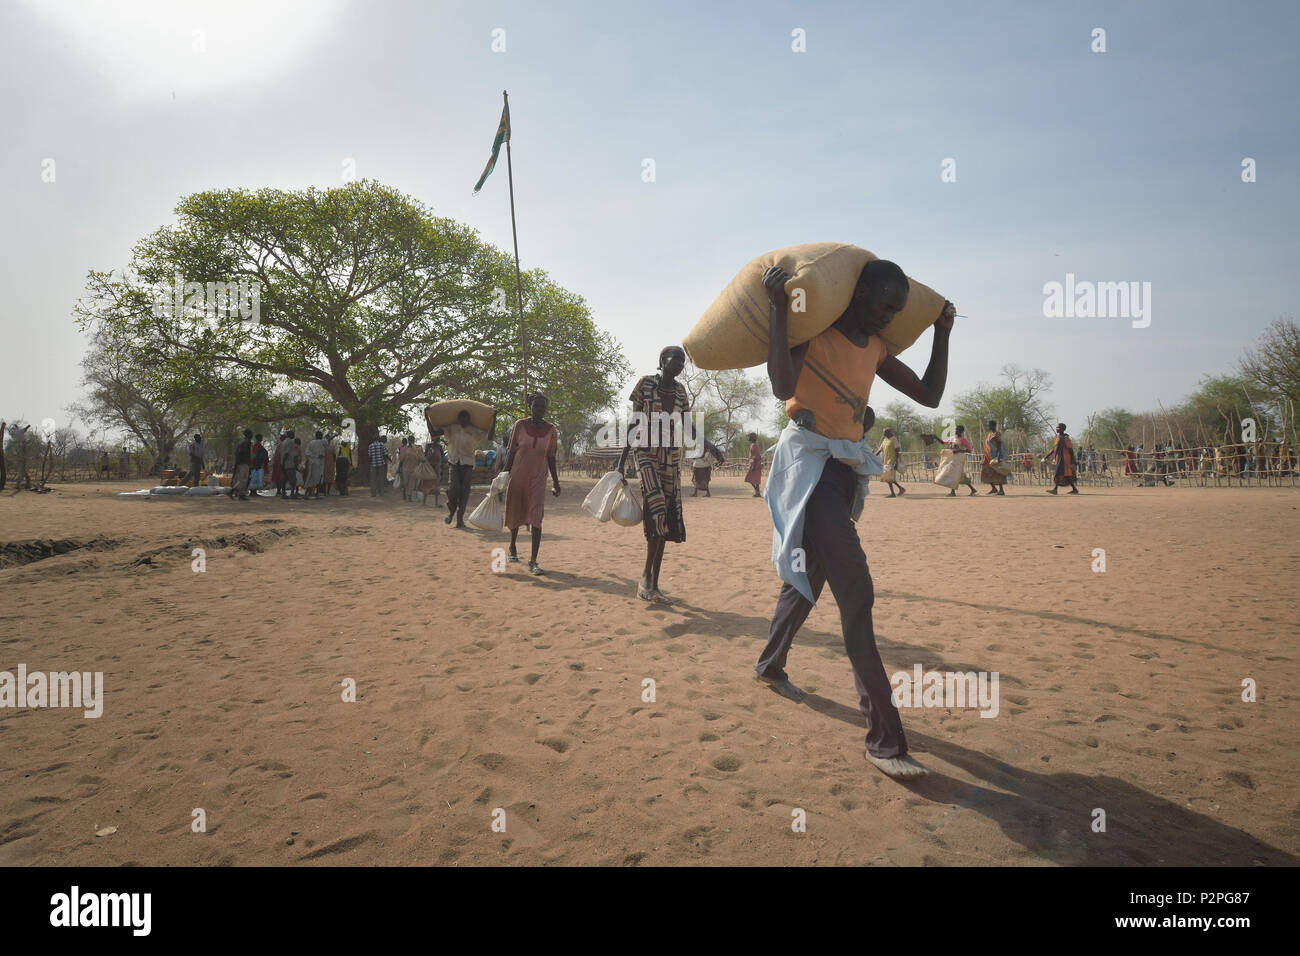 People receive food from the ACT Alliance on April 7, 2017, in Rumading, a village in South Sudan's war-plagued Lol State. - Stock Image